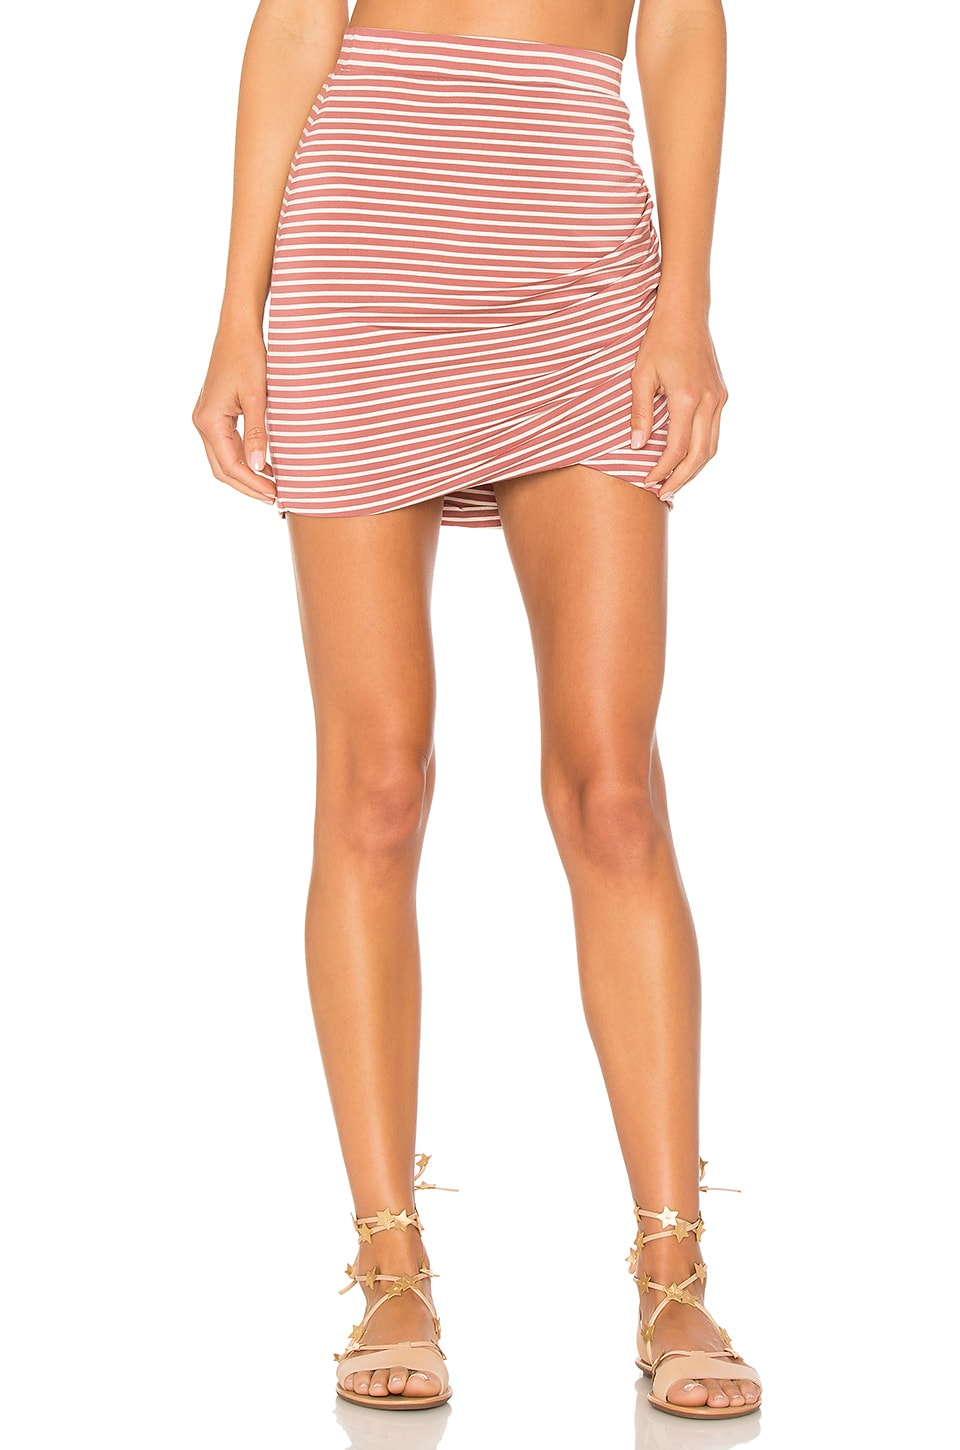 Lovers + Friends Voyage Skirt in Sand